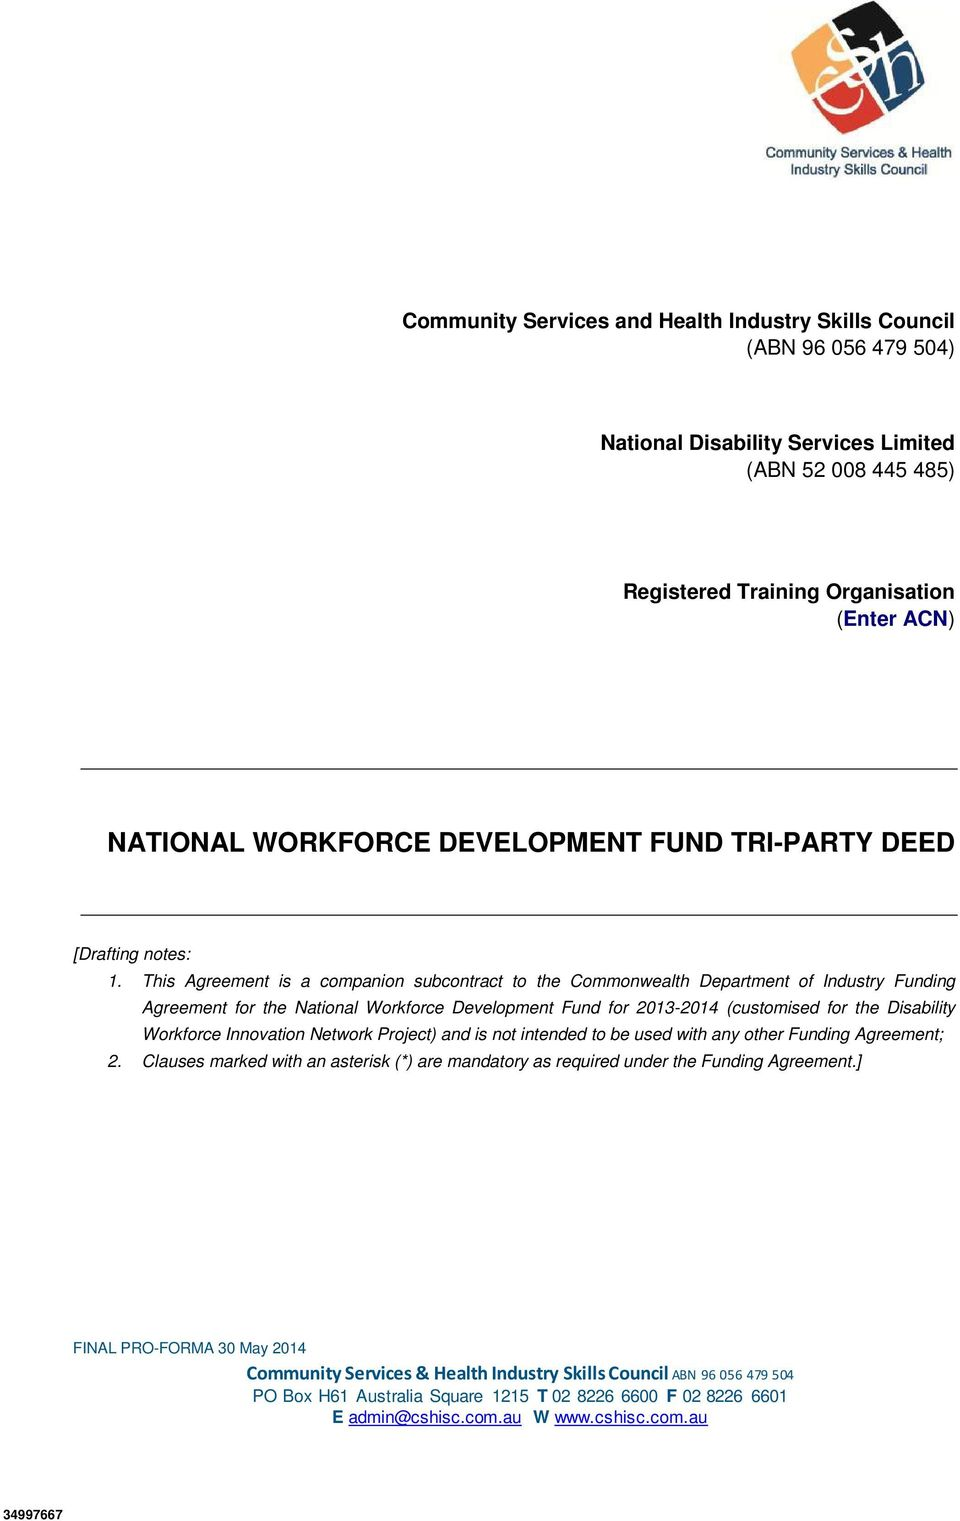 This Agreement is a companion subcontract to the Commonwealth Department of Industry Funding Agreement for the National Workforce Development Fund for 2013-2014 (customised for the Disability